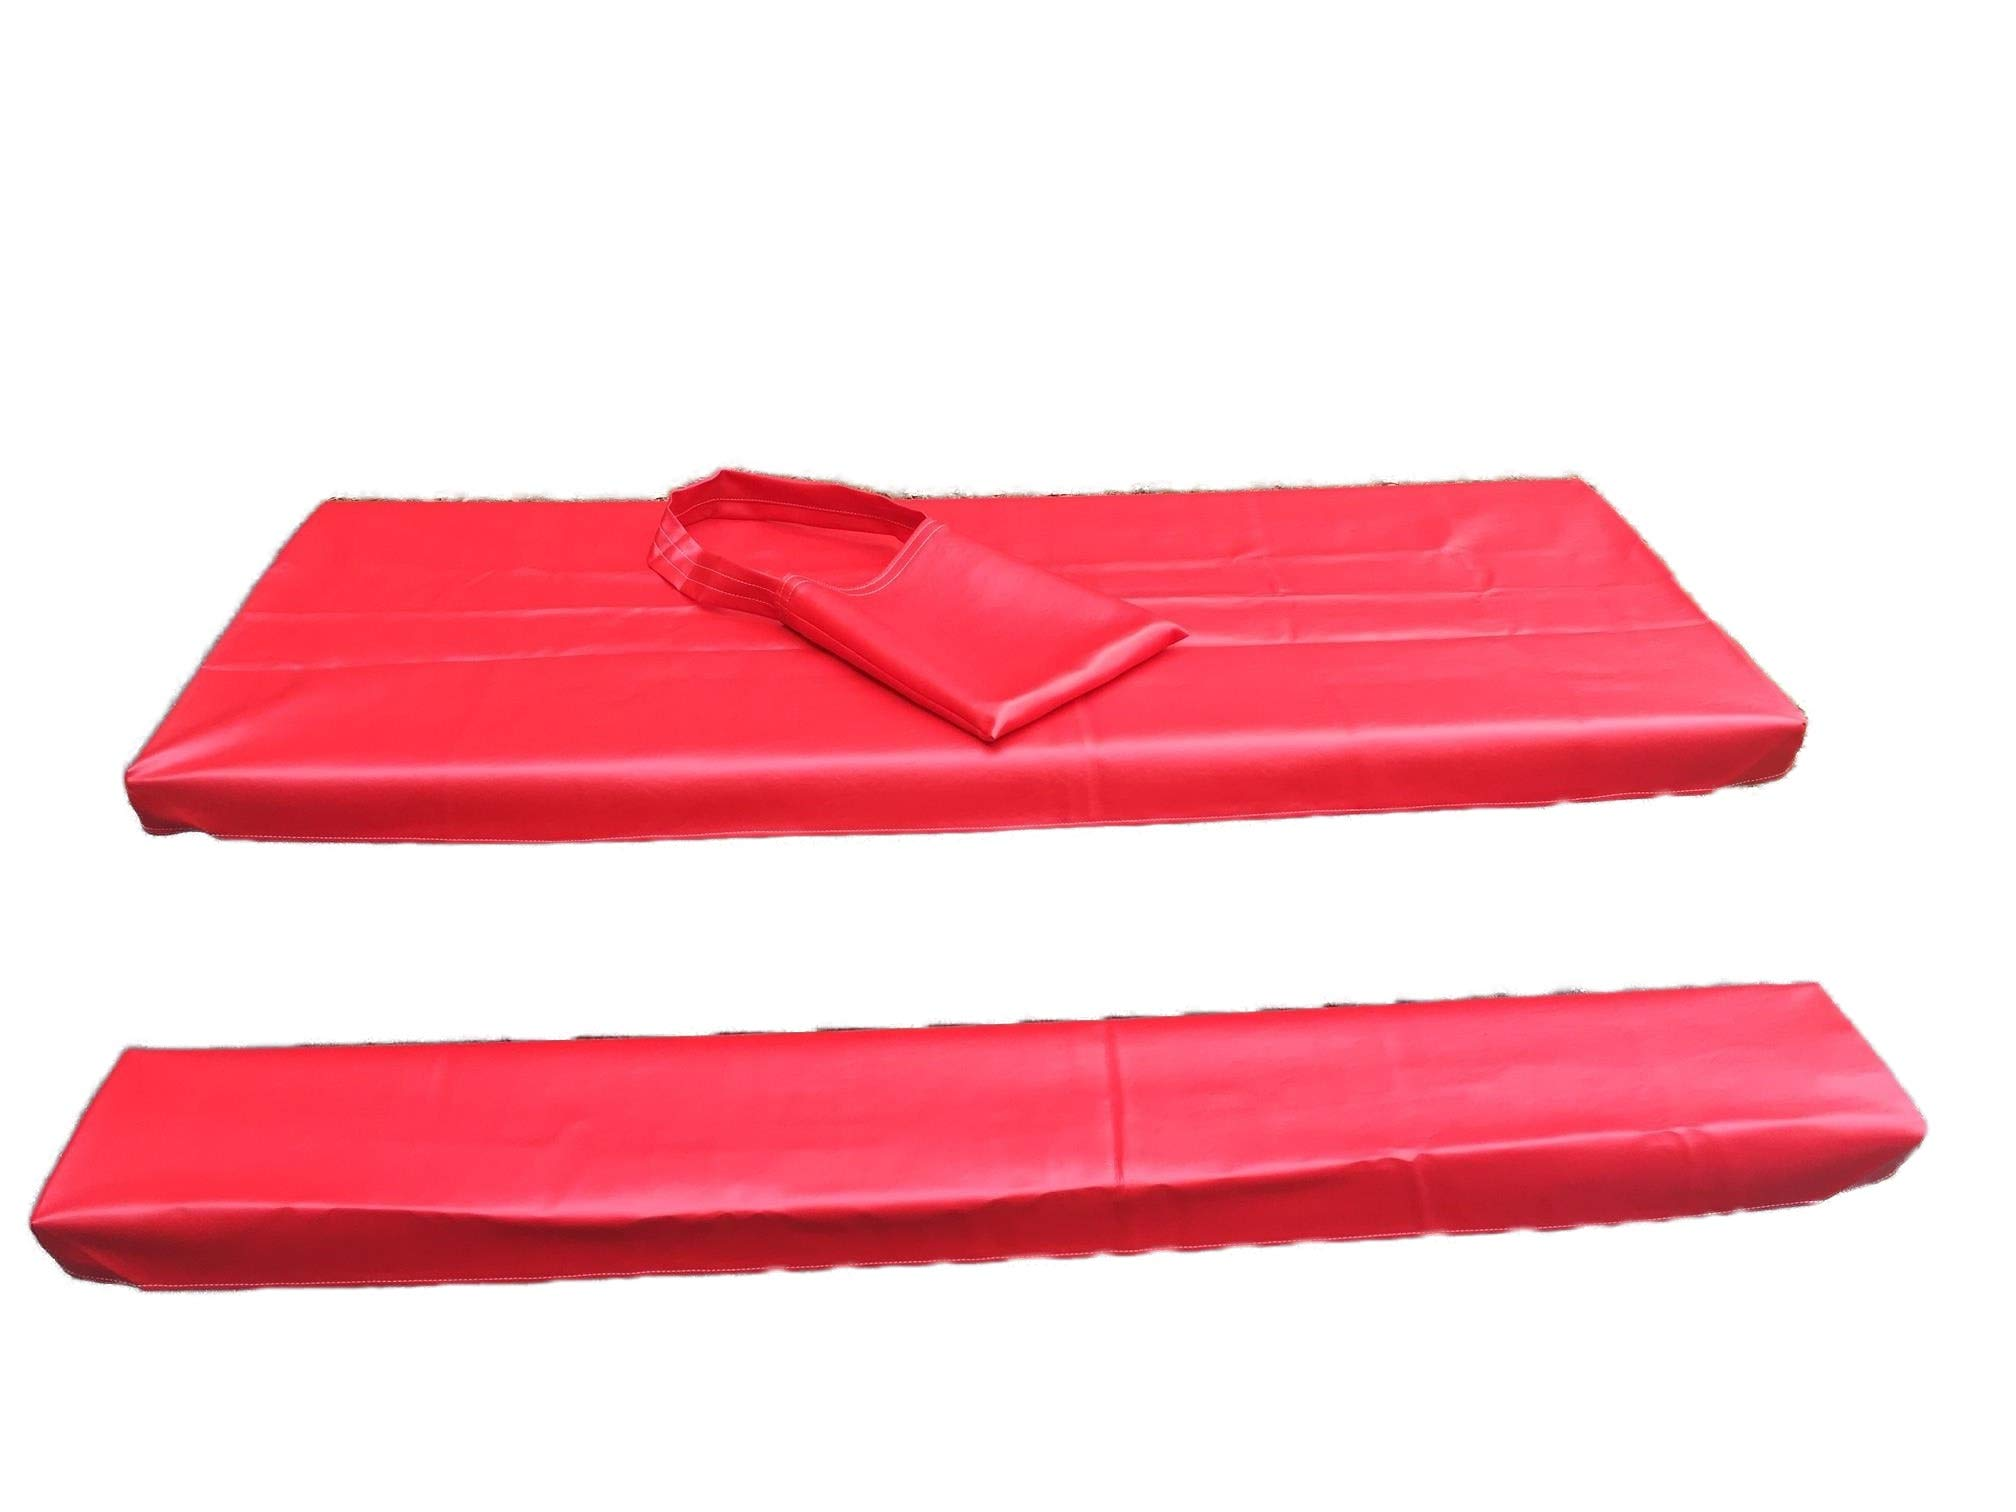 Table Gloves- Worlds Finest, Most Heavy Duty, Fitted Marine Grade Vinyl Picnic Table Cover Sets- Hand Made in The U.S.A. - Great for Camping or Full Time RV Living-(8 Foot Set- Classic Red) by Table Gloves (Image #1)